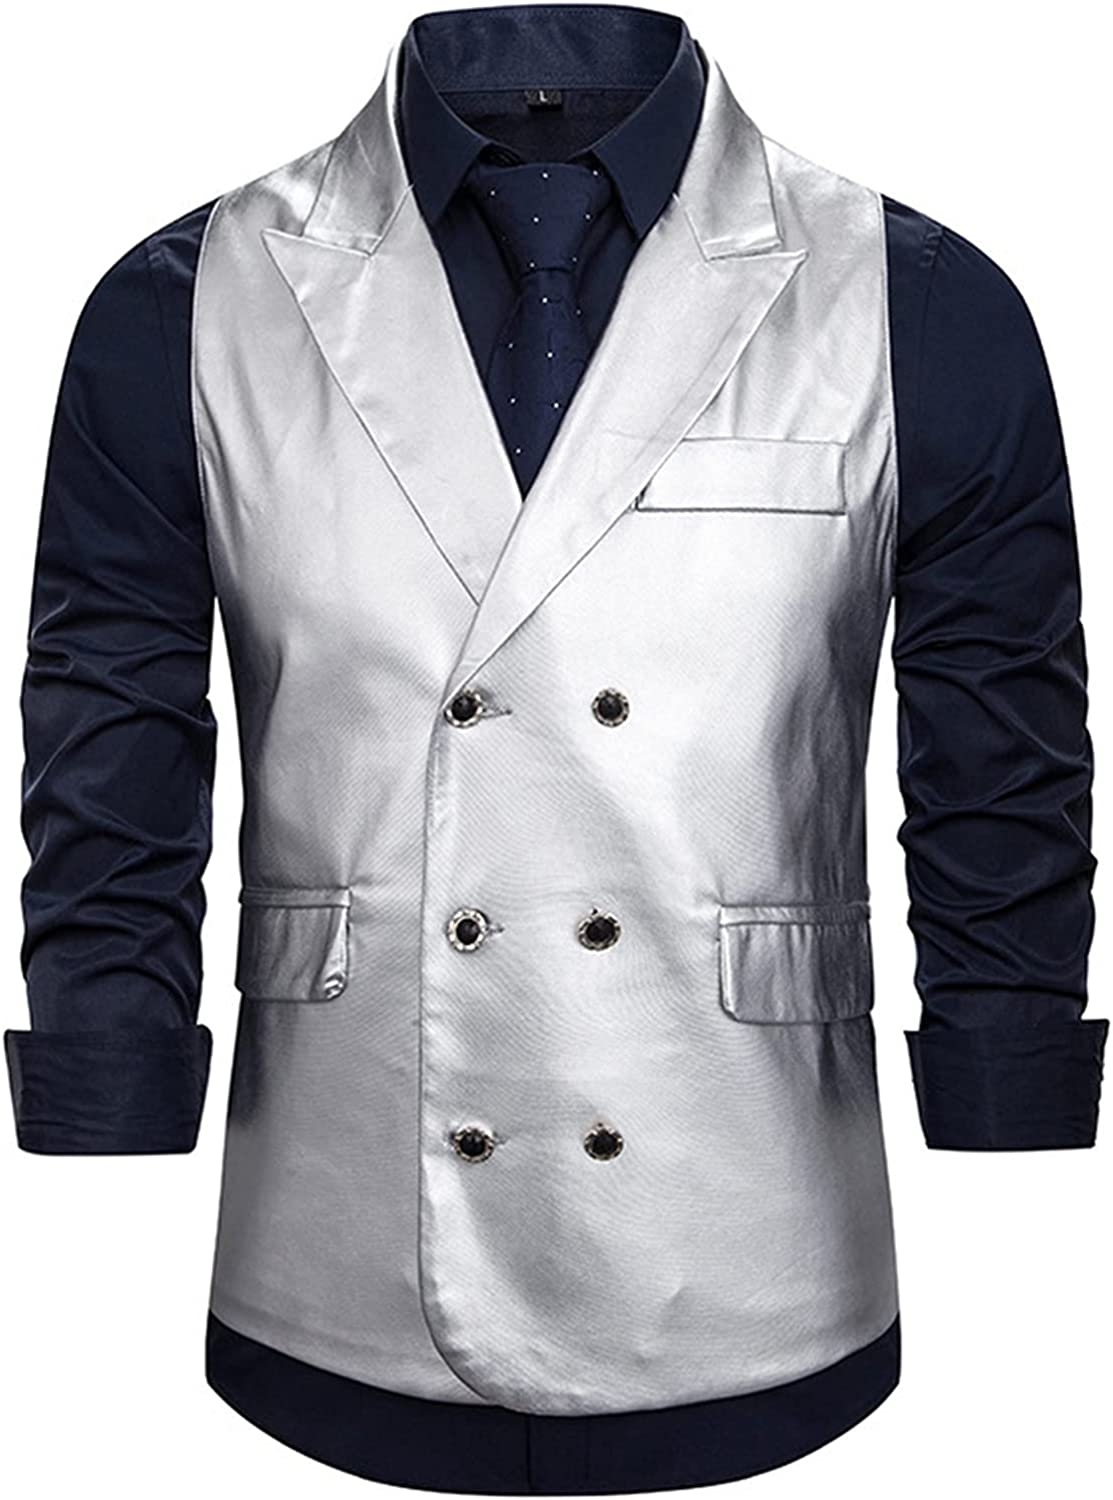 Men's Nightclub Glossy Waistcoat,Classic Double Breasted Waistcoats,Wedding Party Business Fit Vest